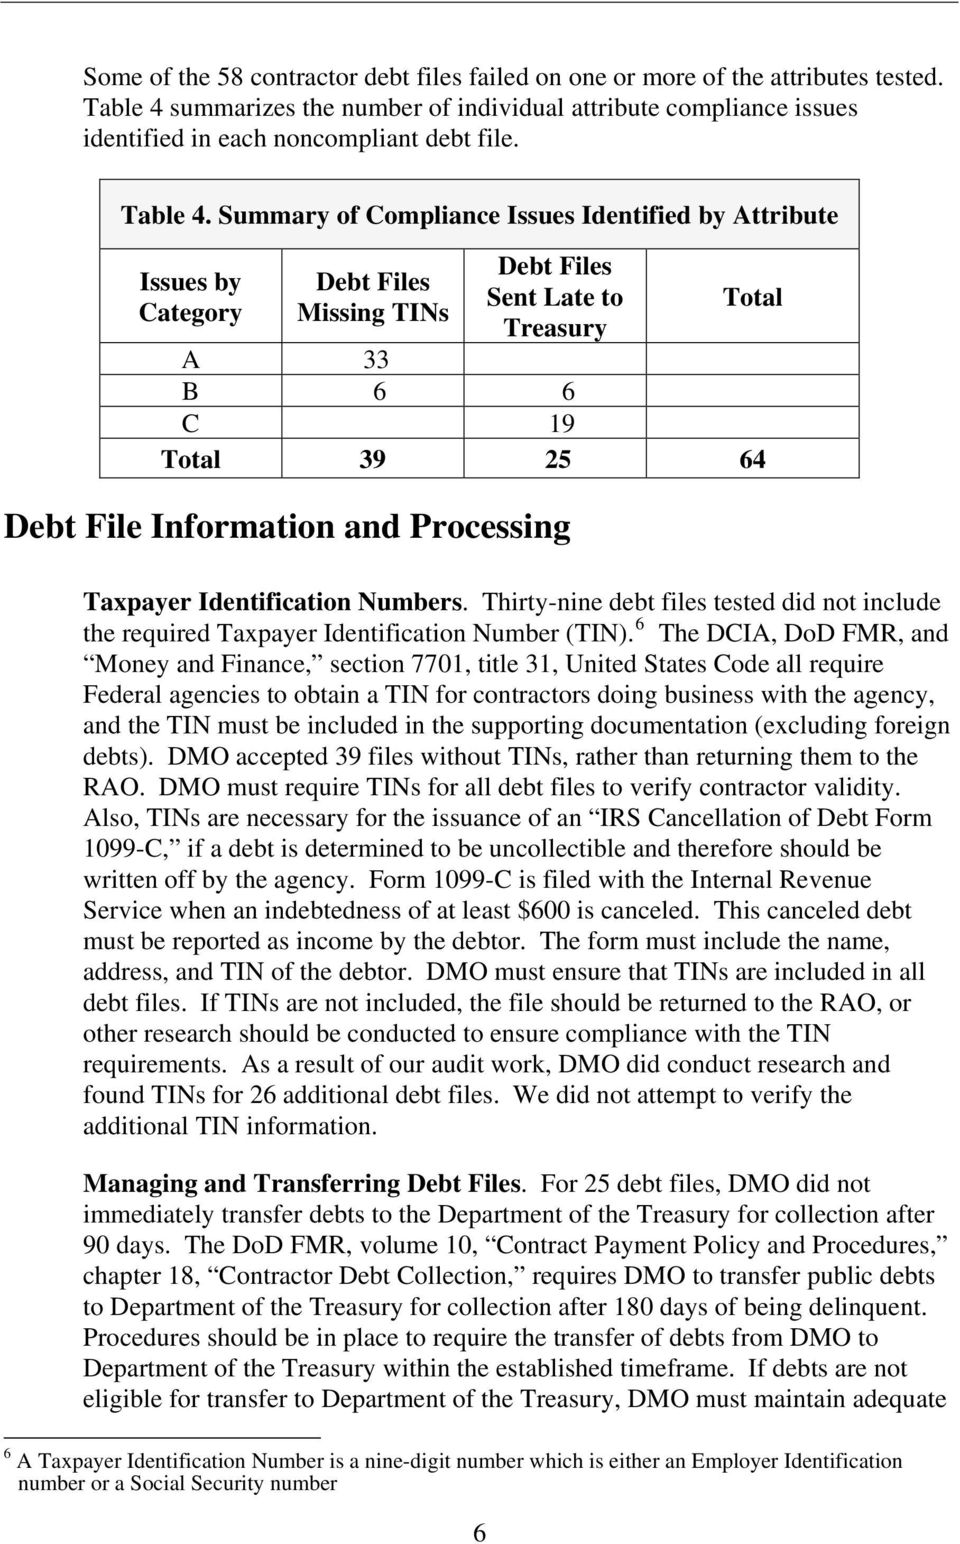 Summary of Compliance Issues Identified by Attribute Issues by Category Debt Files Missing TINs 6 Debt Files Sent Late to Treasury Total A 33 B 6 6 C 19 Total 39 25 64 Debt File Information and